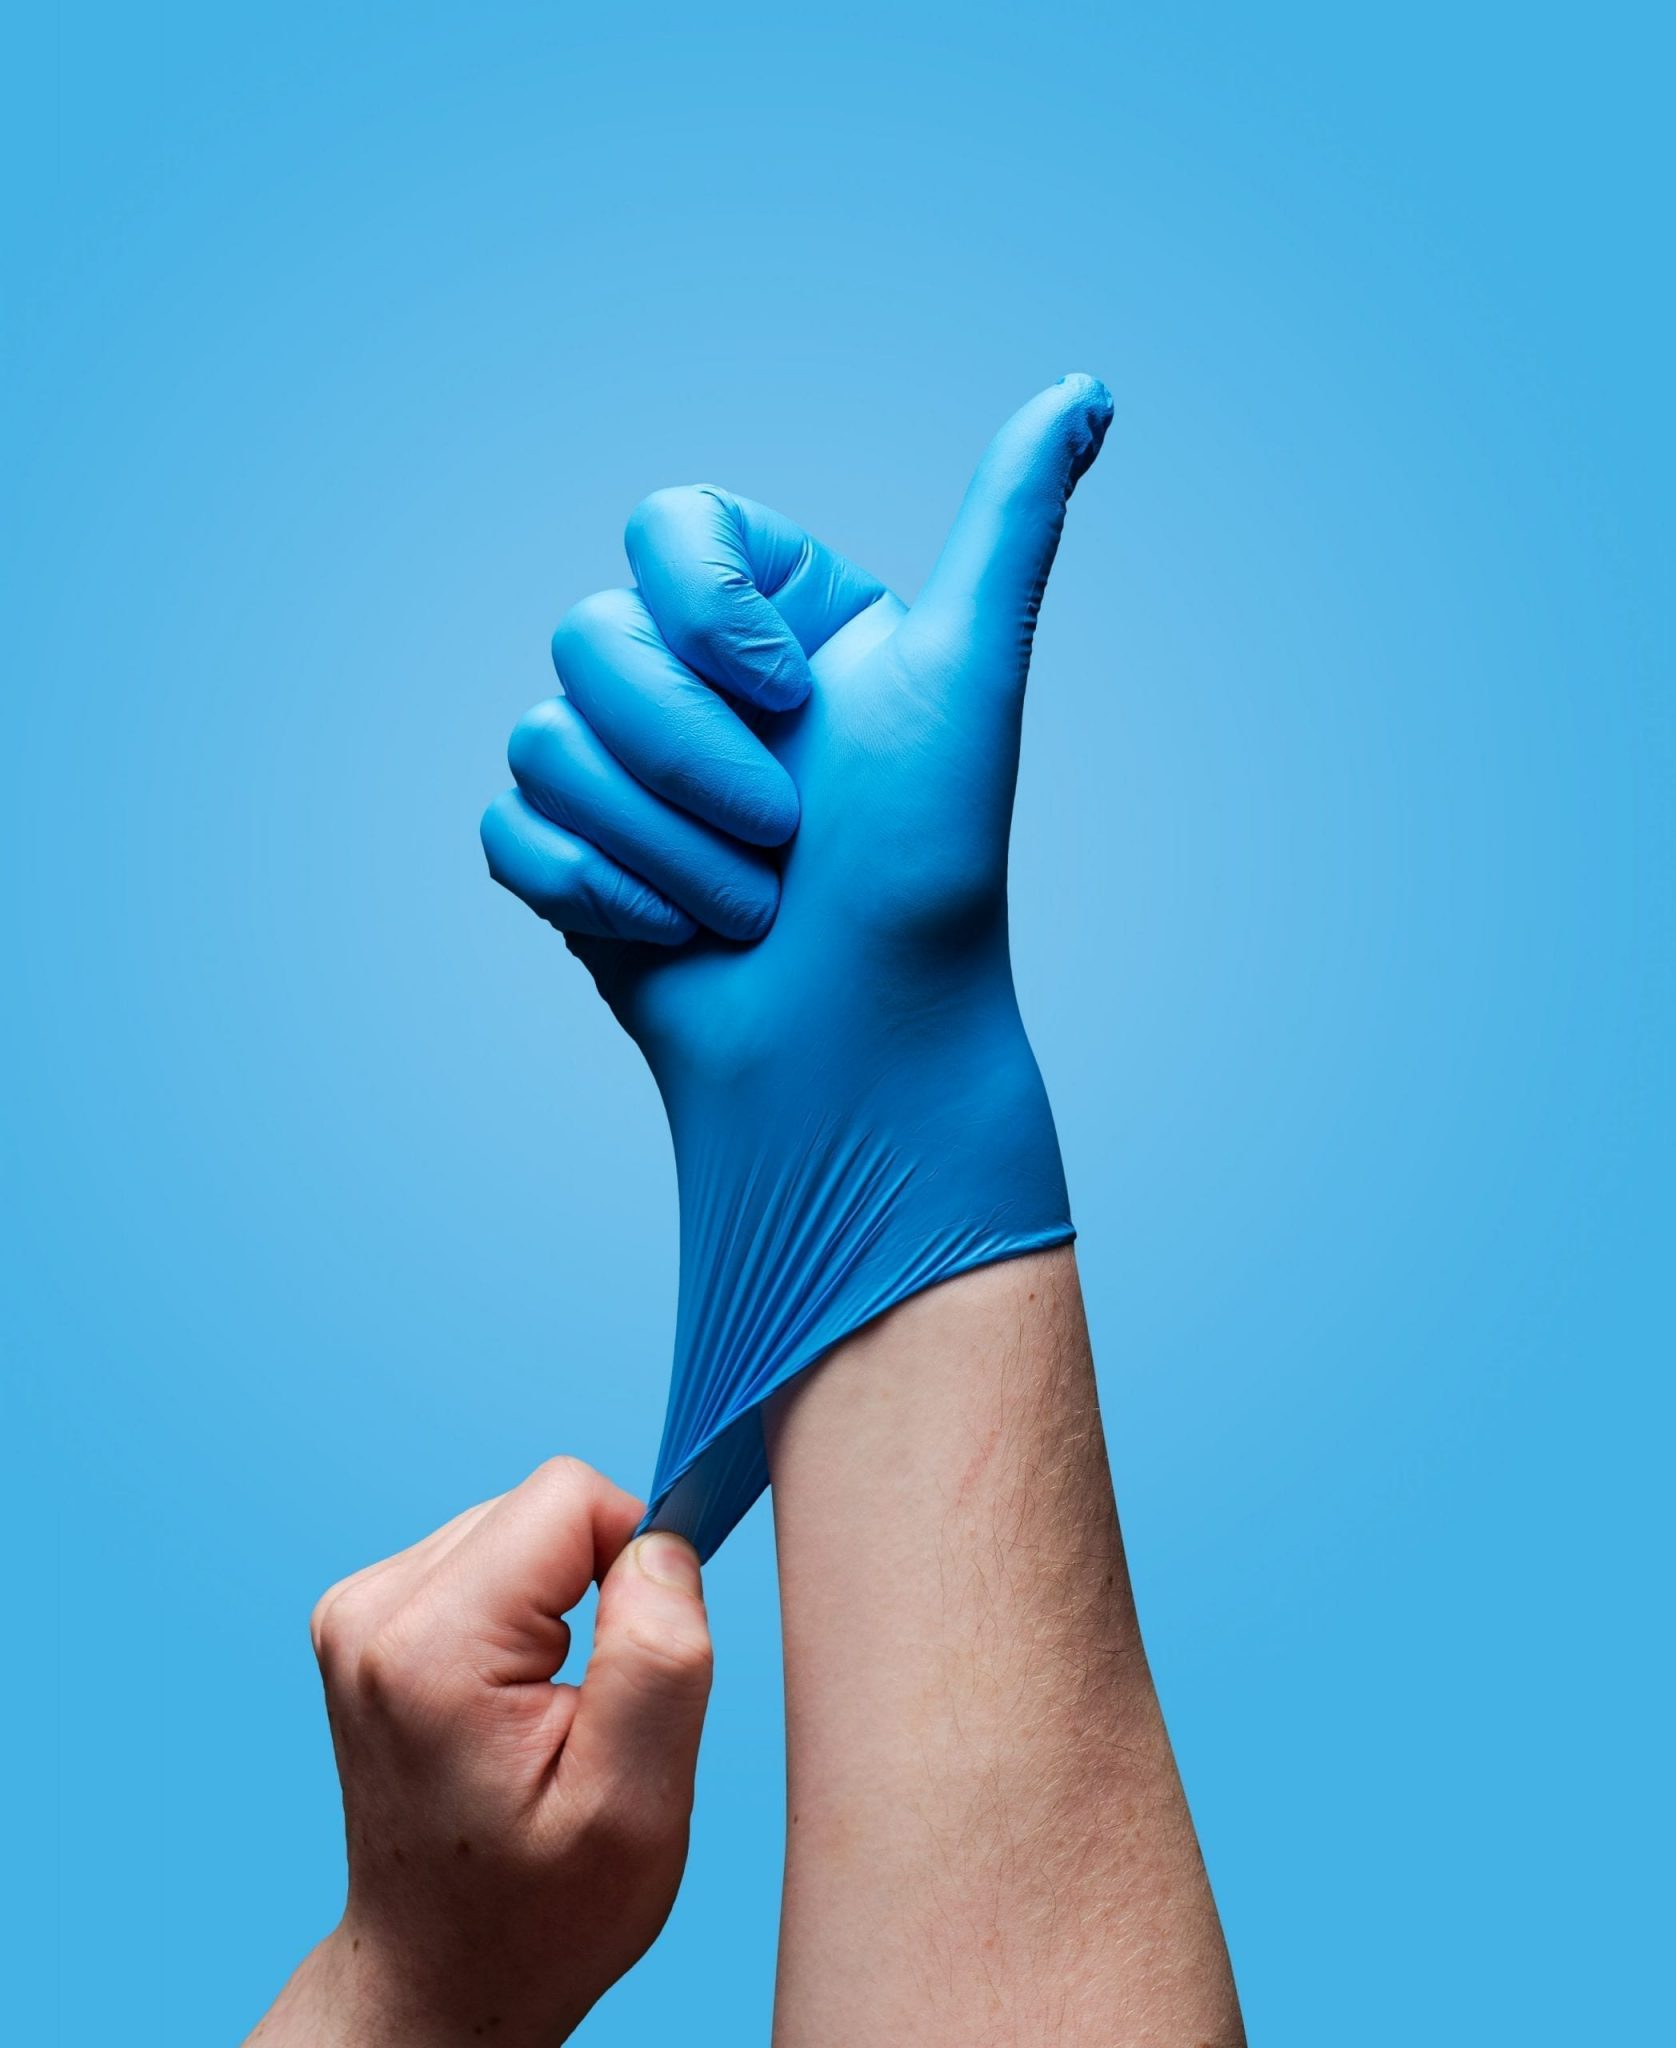 Pacific Breeze Products offers gloves for your business